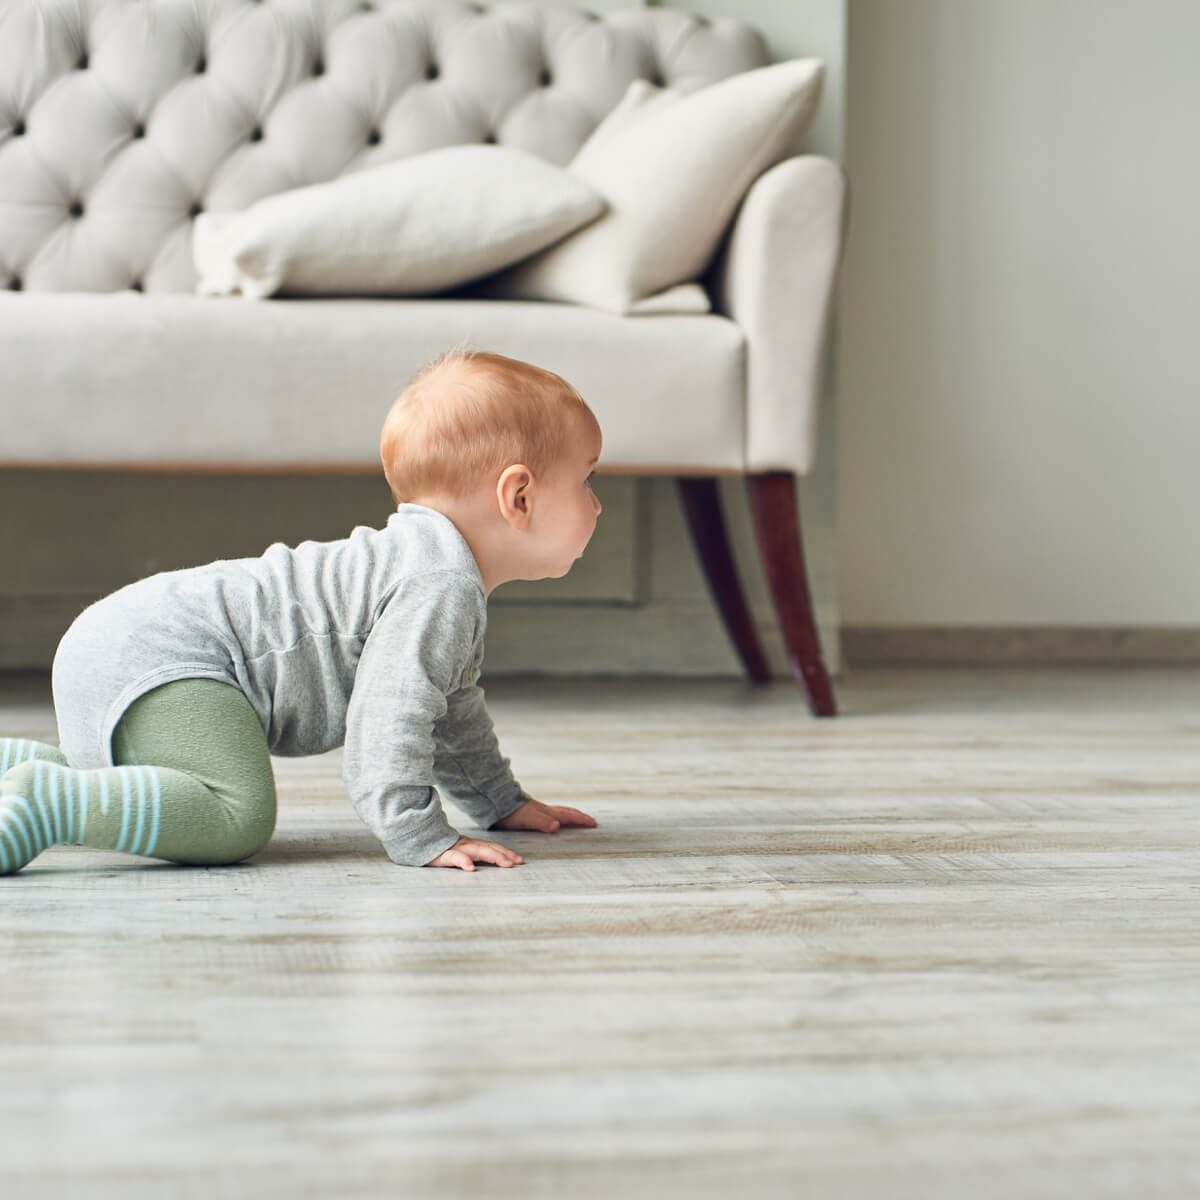 Baby on luxury vinyl floor | Jack's Tile And Carpet